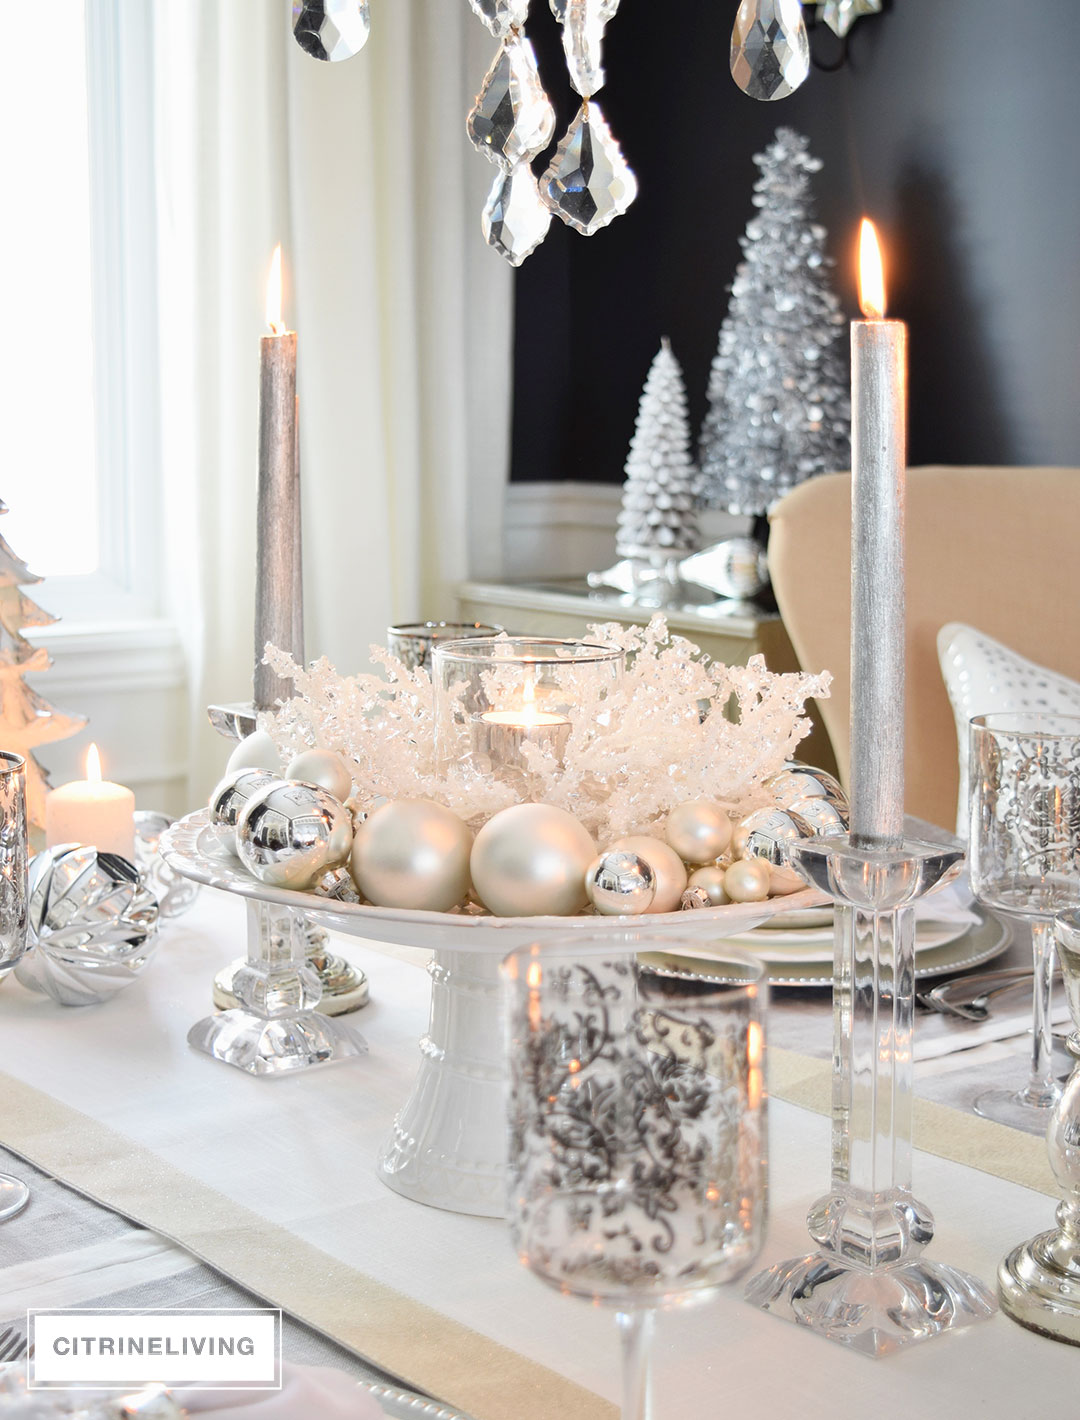 white-cakestand-silver-christmas-ornaments-centerpiece-tablescape